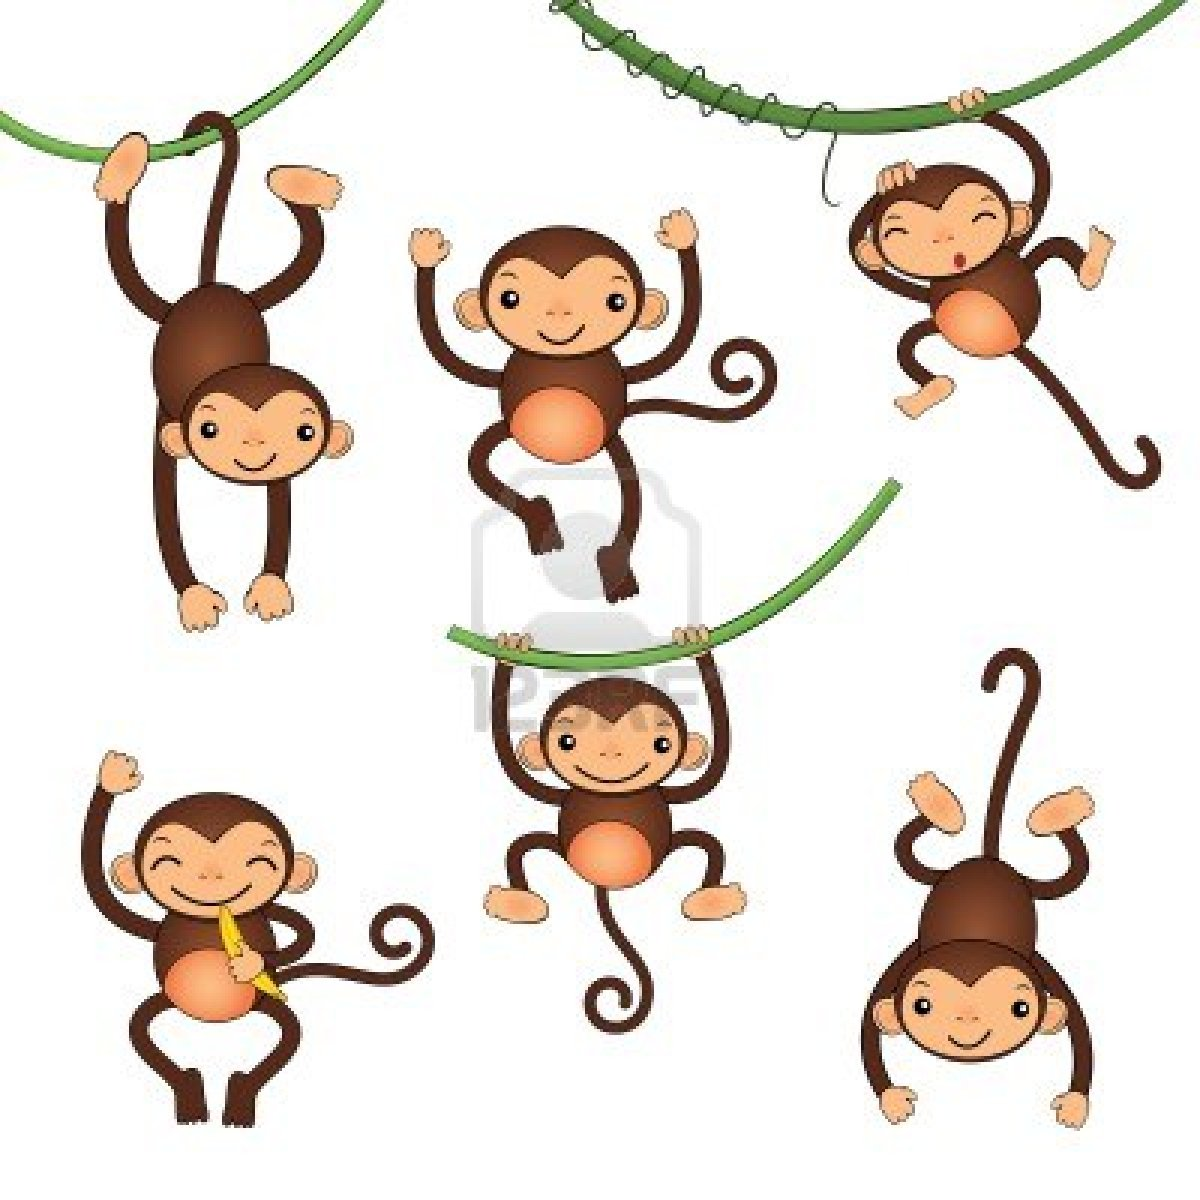 japanese wallpaper cartoon monkey - photo #7